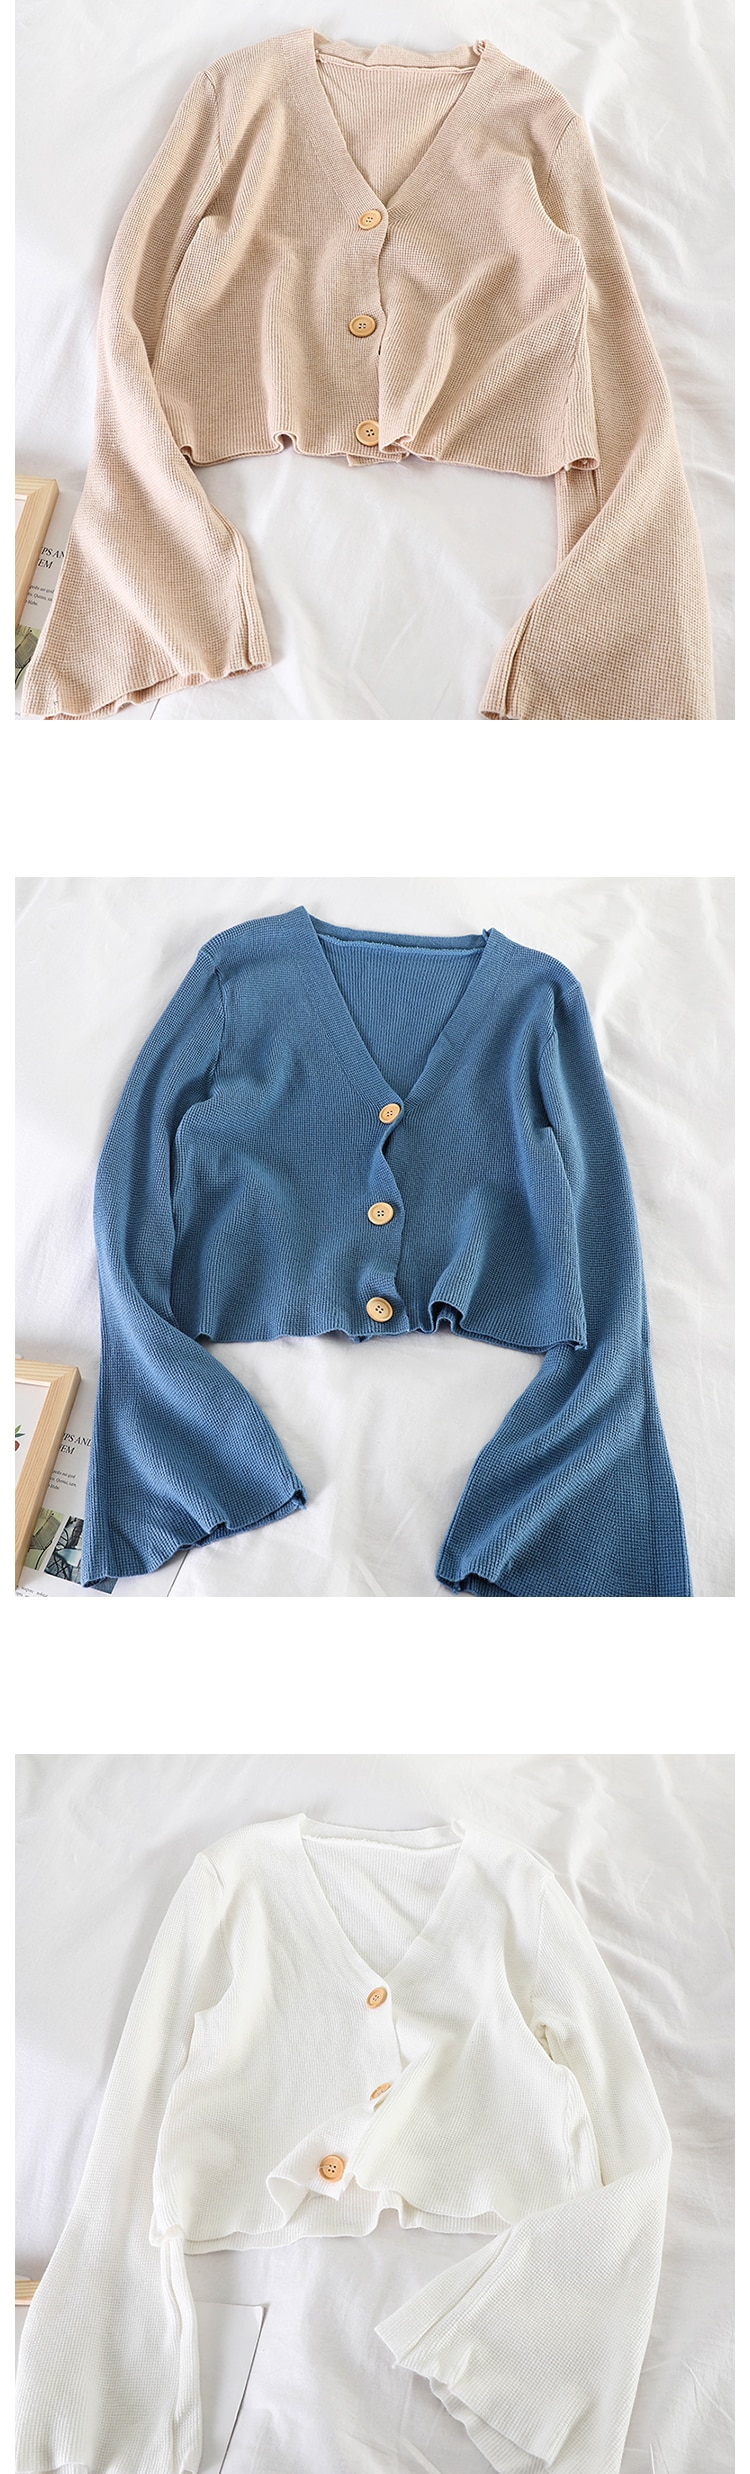 HELIAR Women Knitted Buttoned Up Casual Lantern Sleeve Stretchy Blouse Fashion knitting Slim Elastic Blouse Tops 2020 Autumn